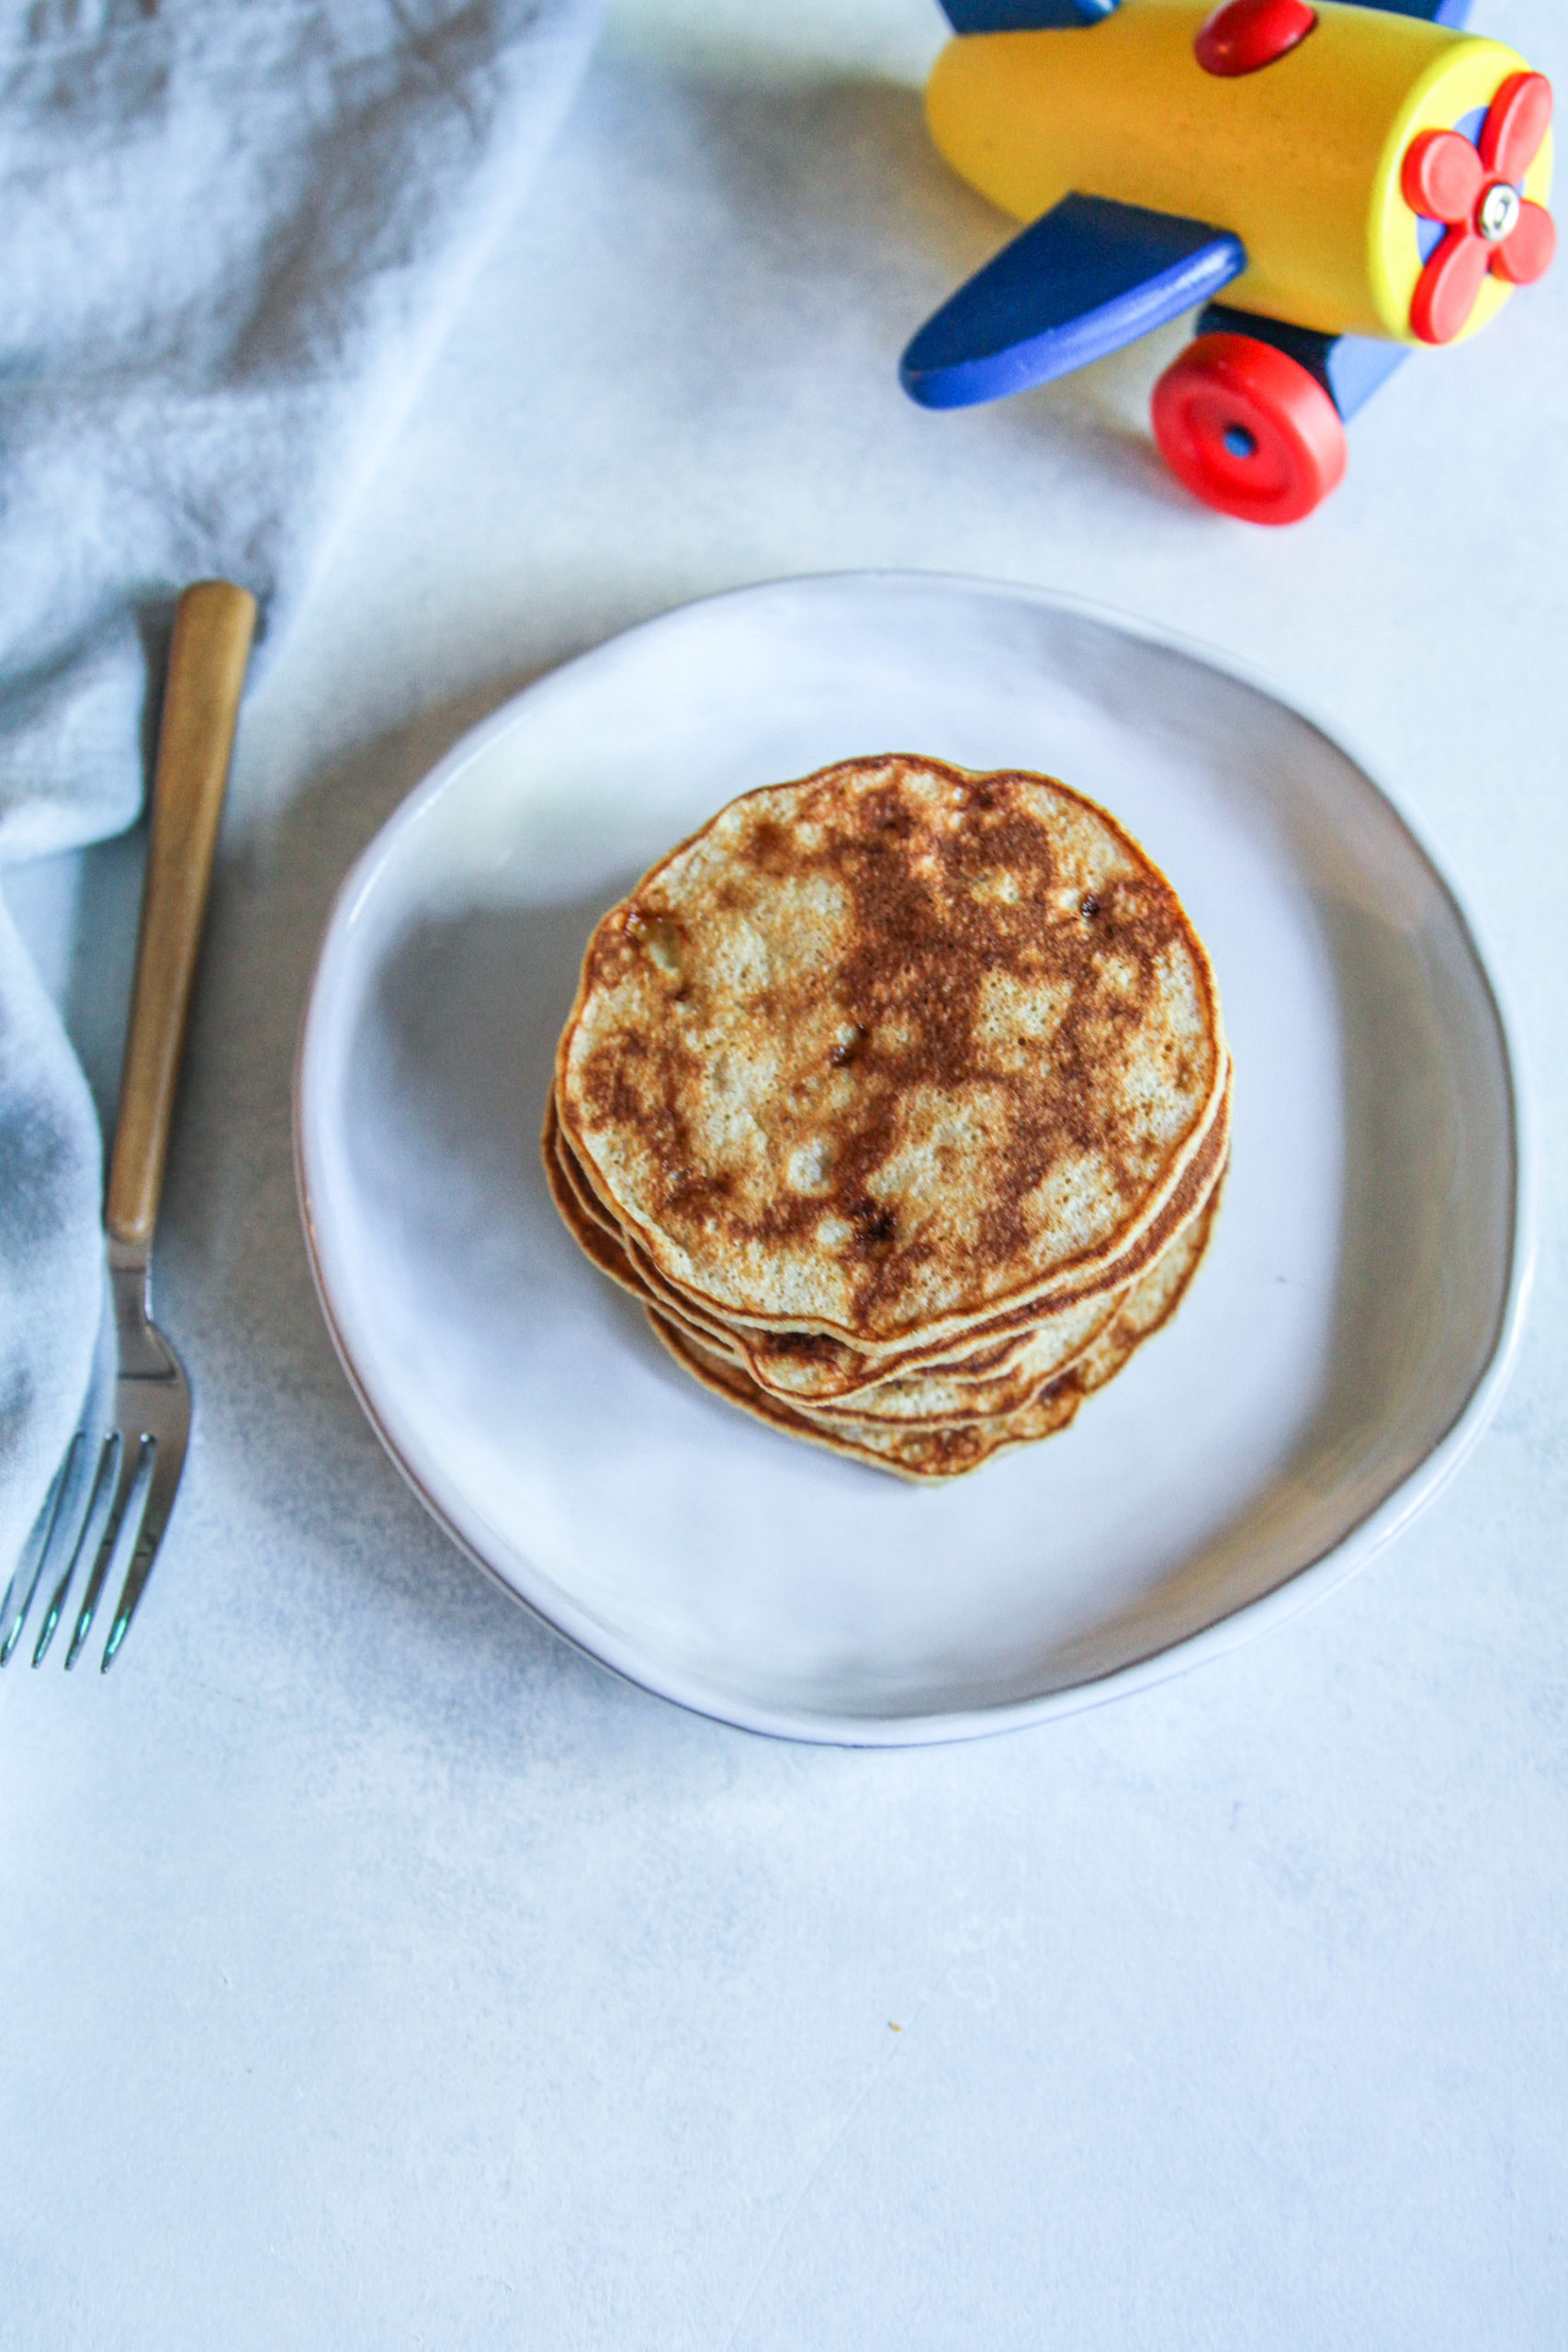 The most delicious and kid approved banana pancakes